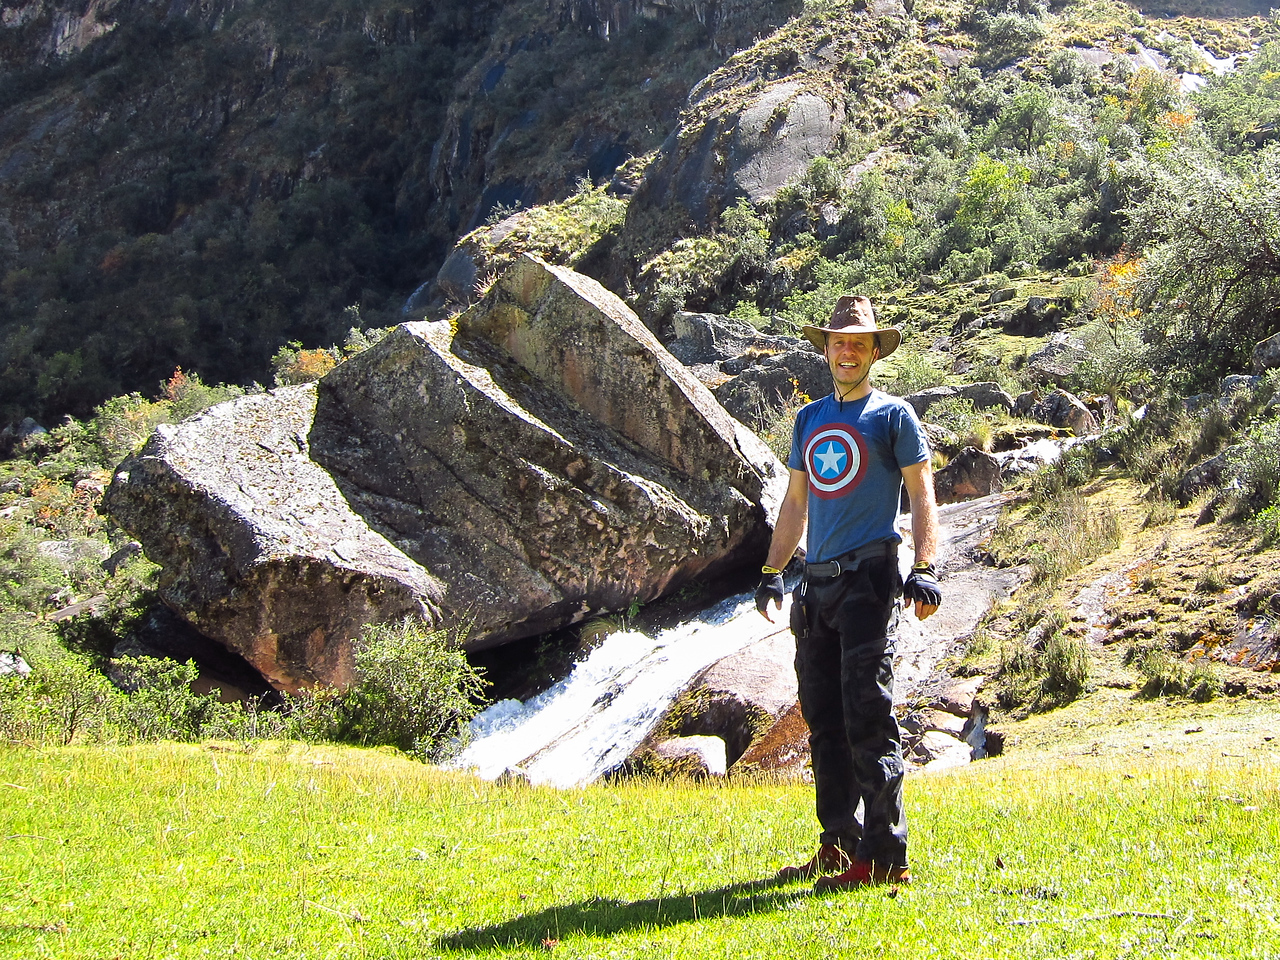 First waterfall in the Pumahuanca Valley - 2 hours in.